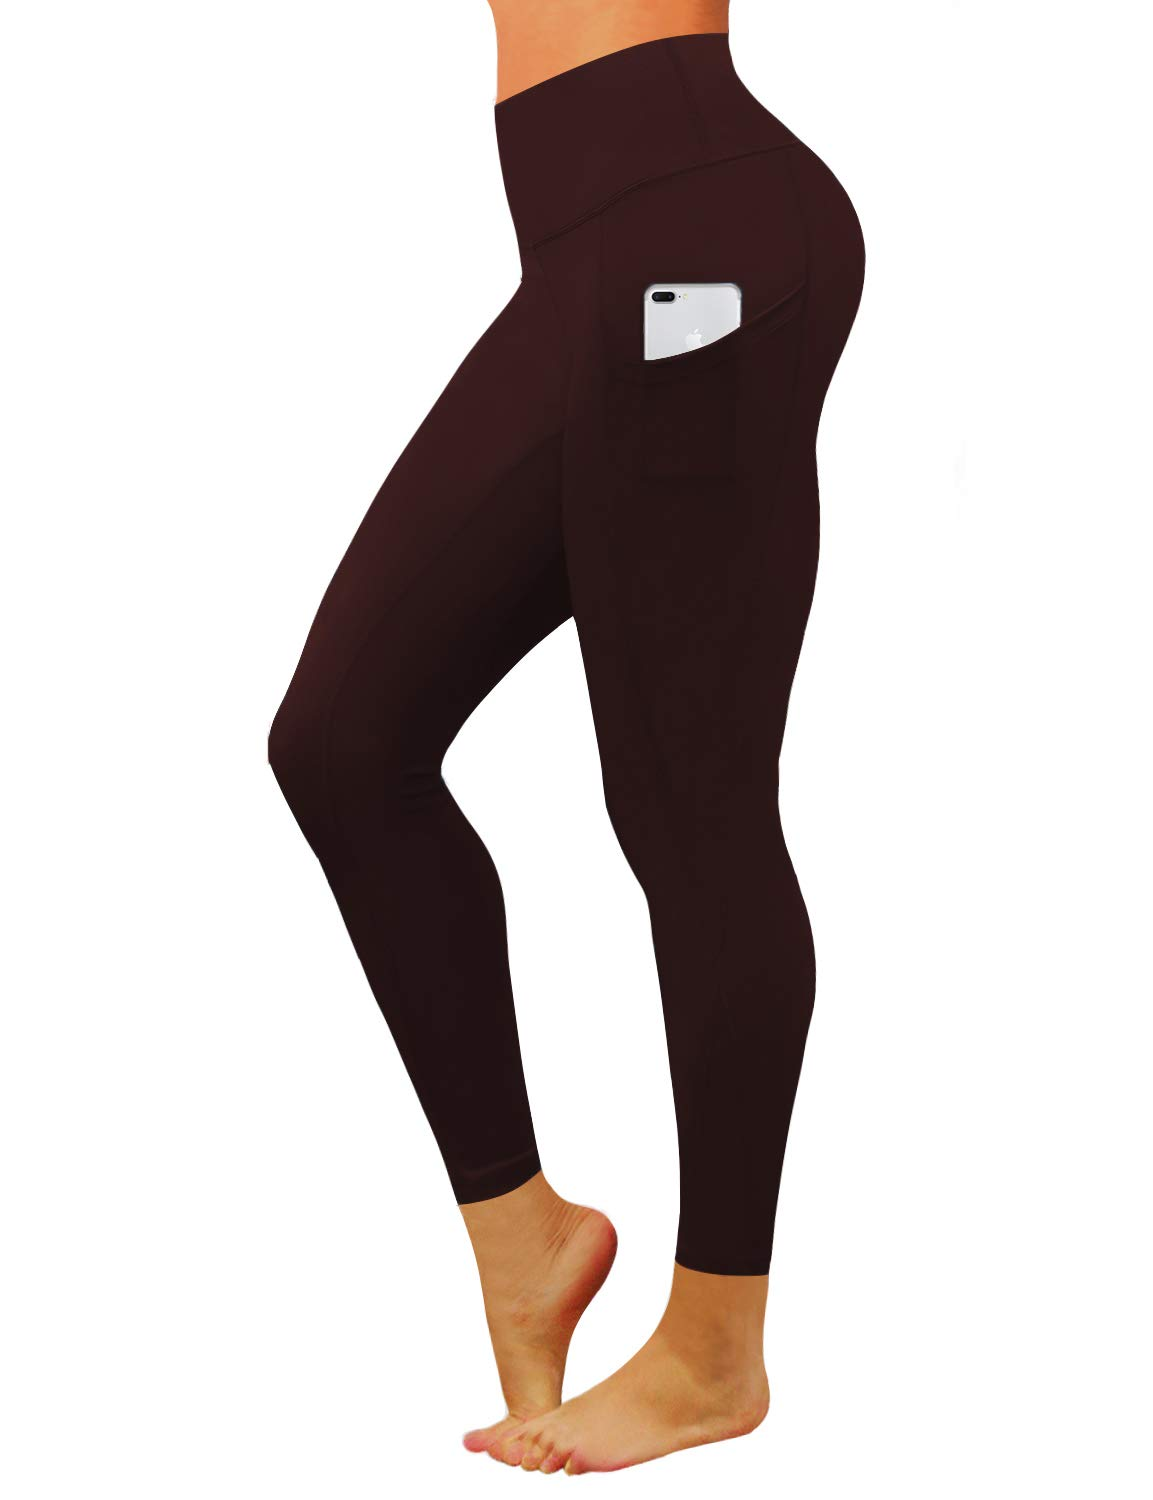 BUBBLELIME High Compression Yoga Pants Out Pocket Running Pants High Waist UPF30+ Workout Pants